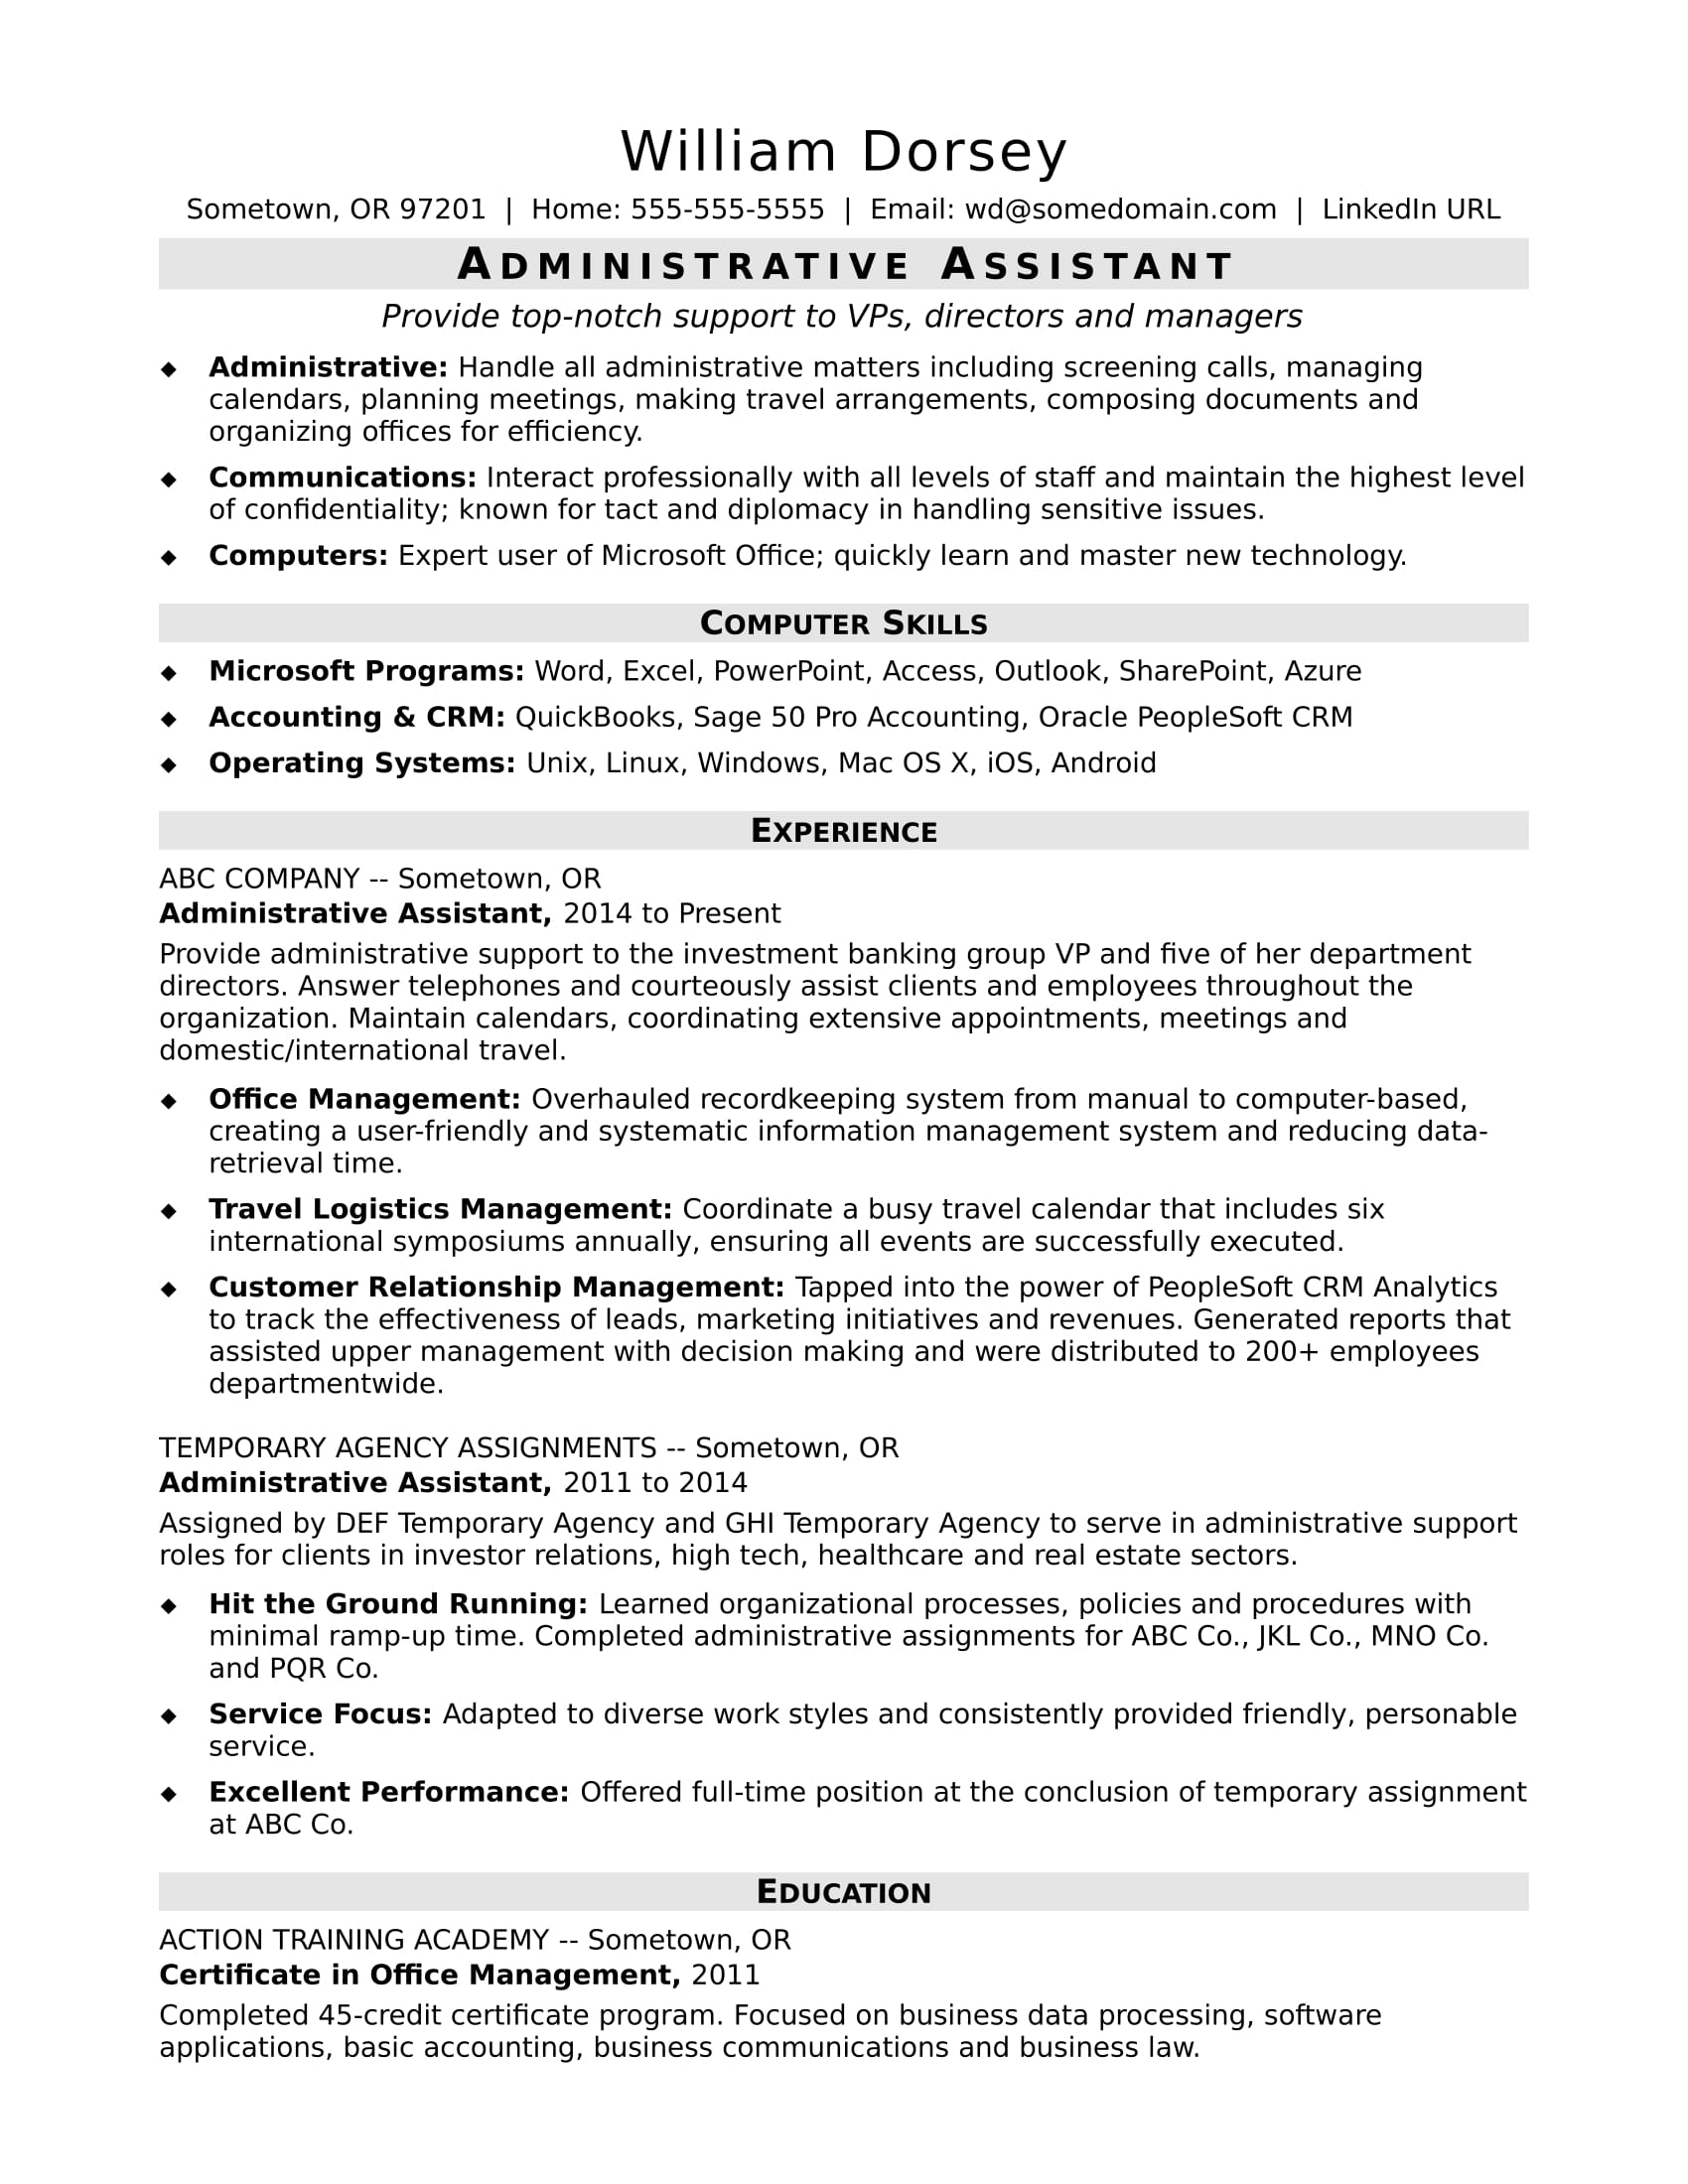 Sample Resume For A Midlevel Administrative Assistant  Resume For Administrative Position